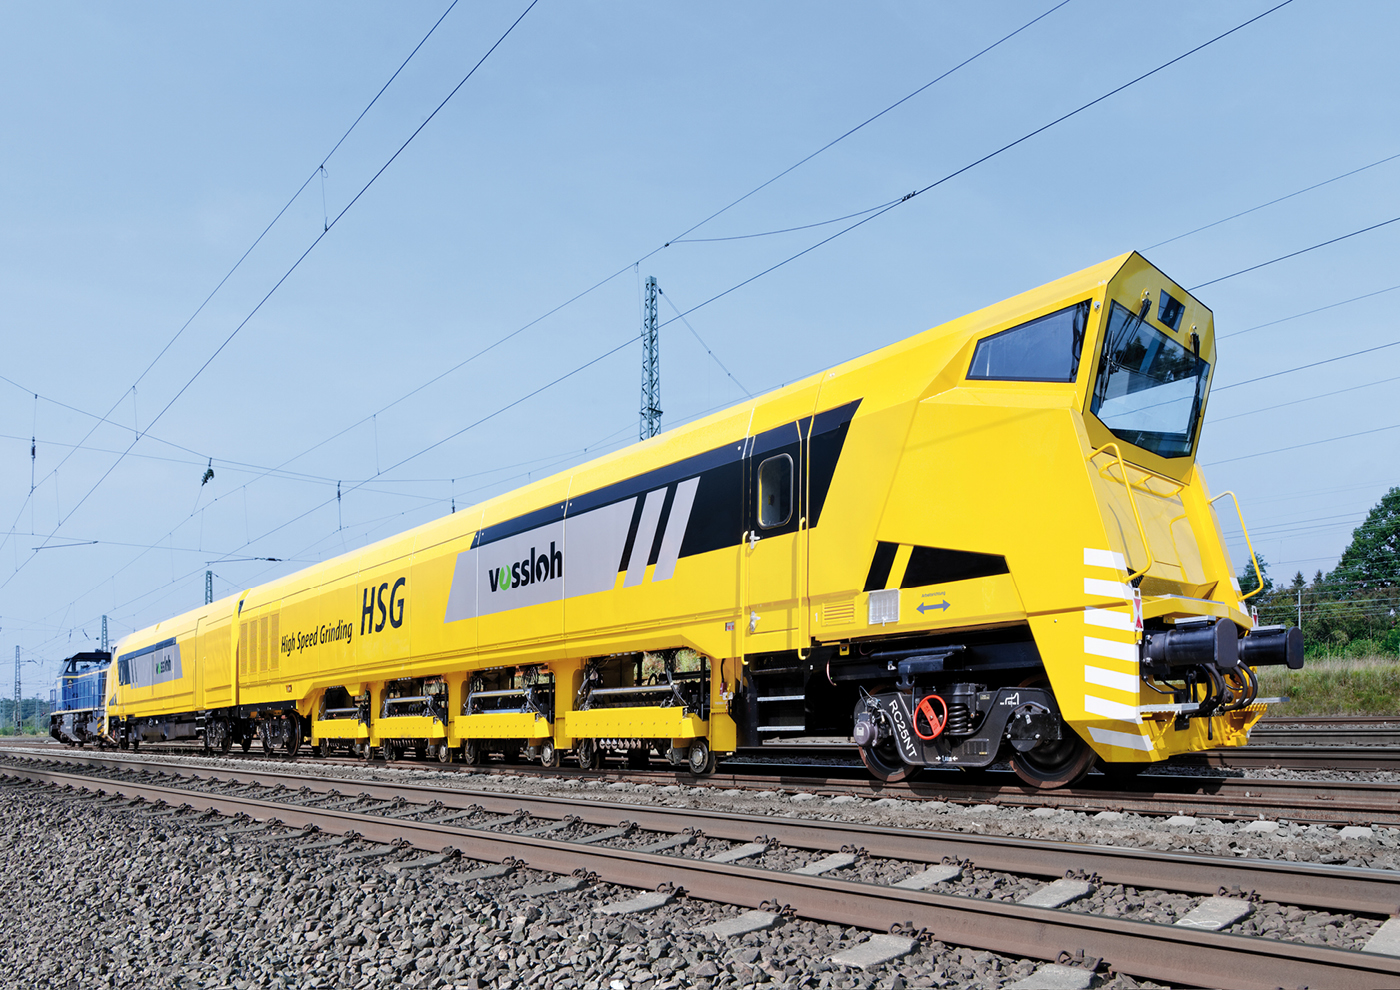 Q&A with Dirk Krämer, head of corporate M&A at Vossloh, leading global rail technology company